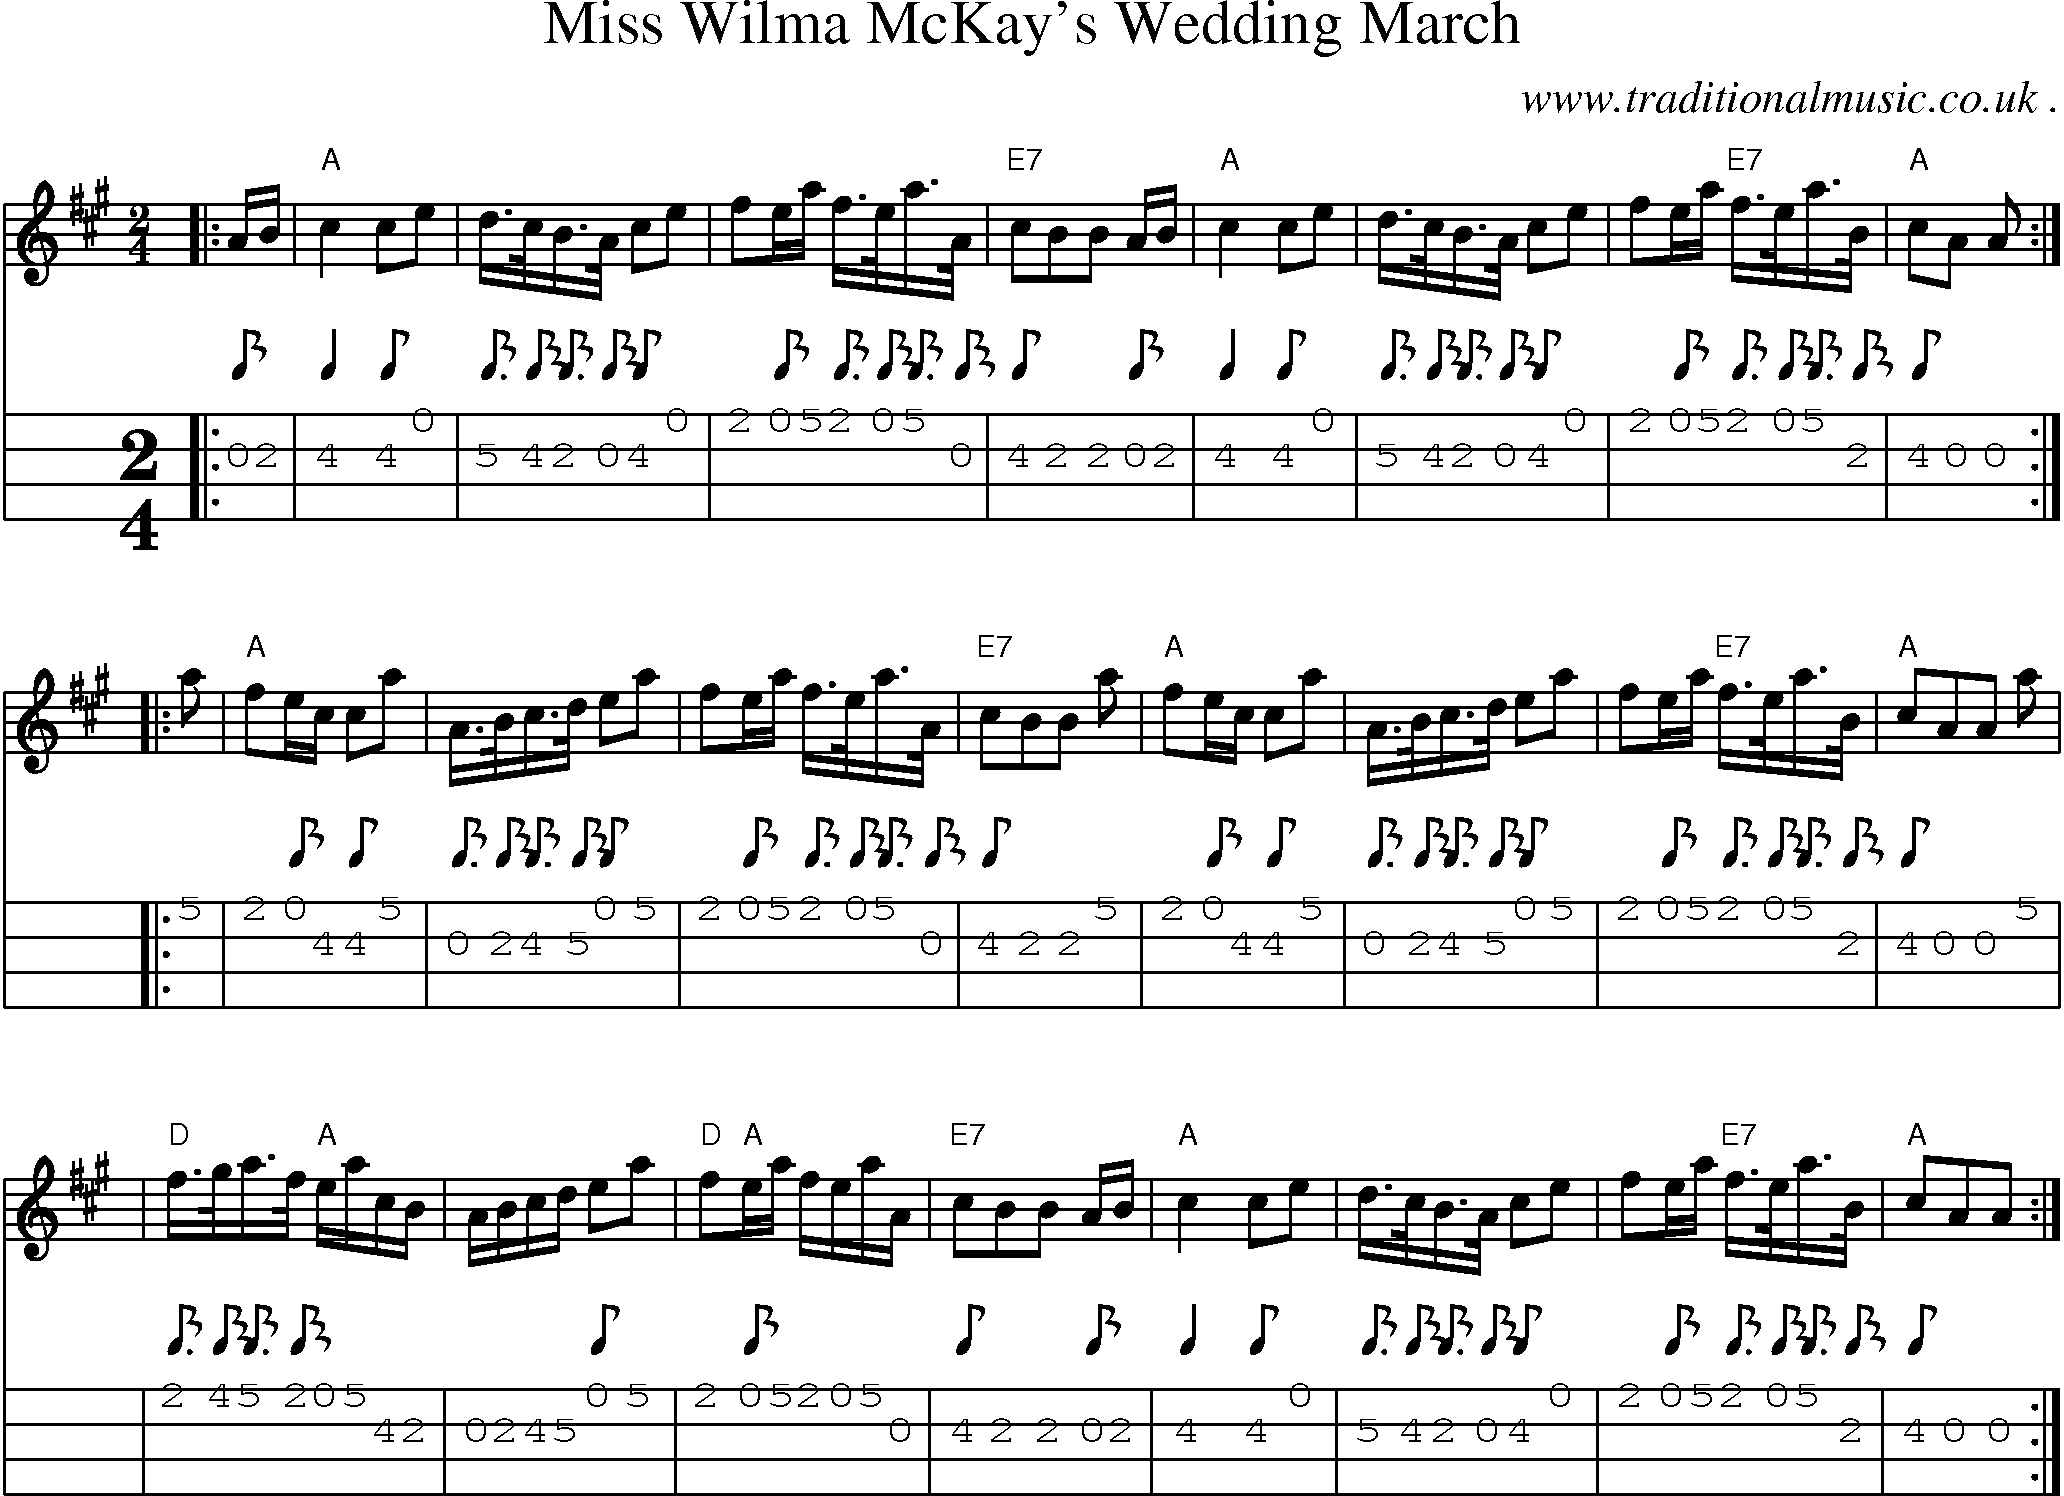 Sheet Music Score Chords And Mandolin Tabs For Miss Wilma Mckays Wedding March